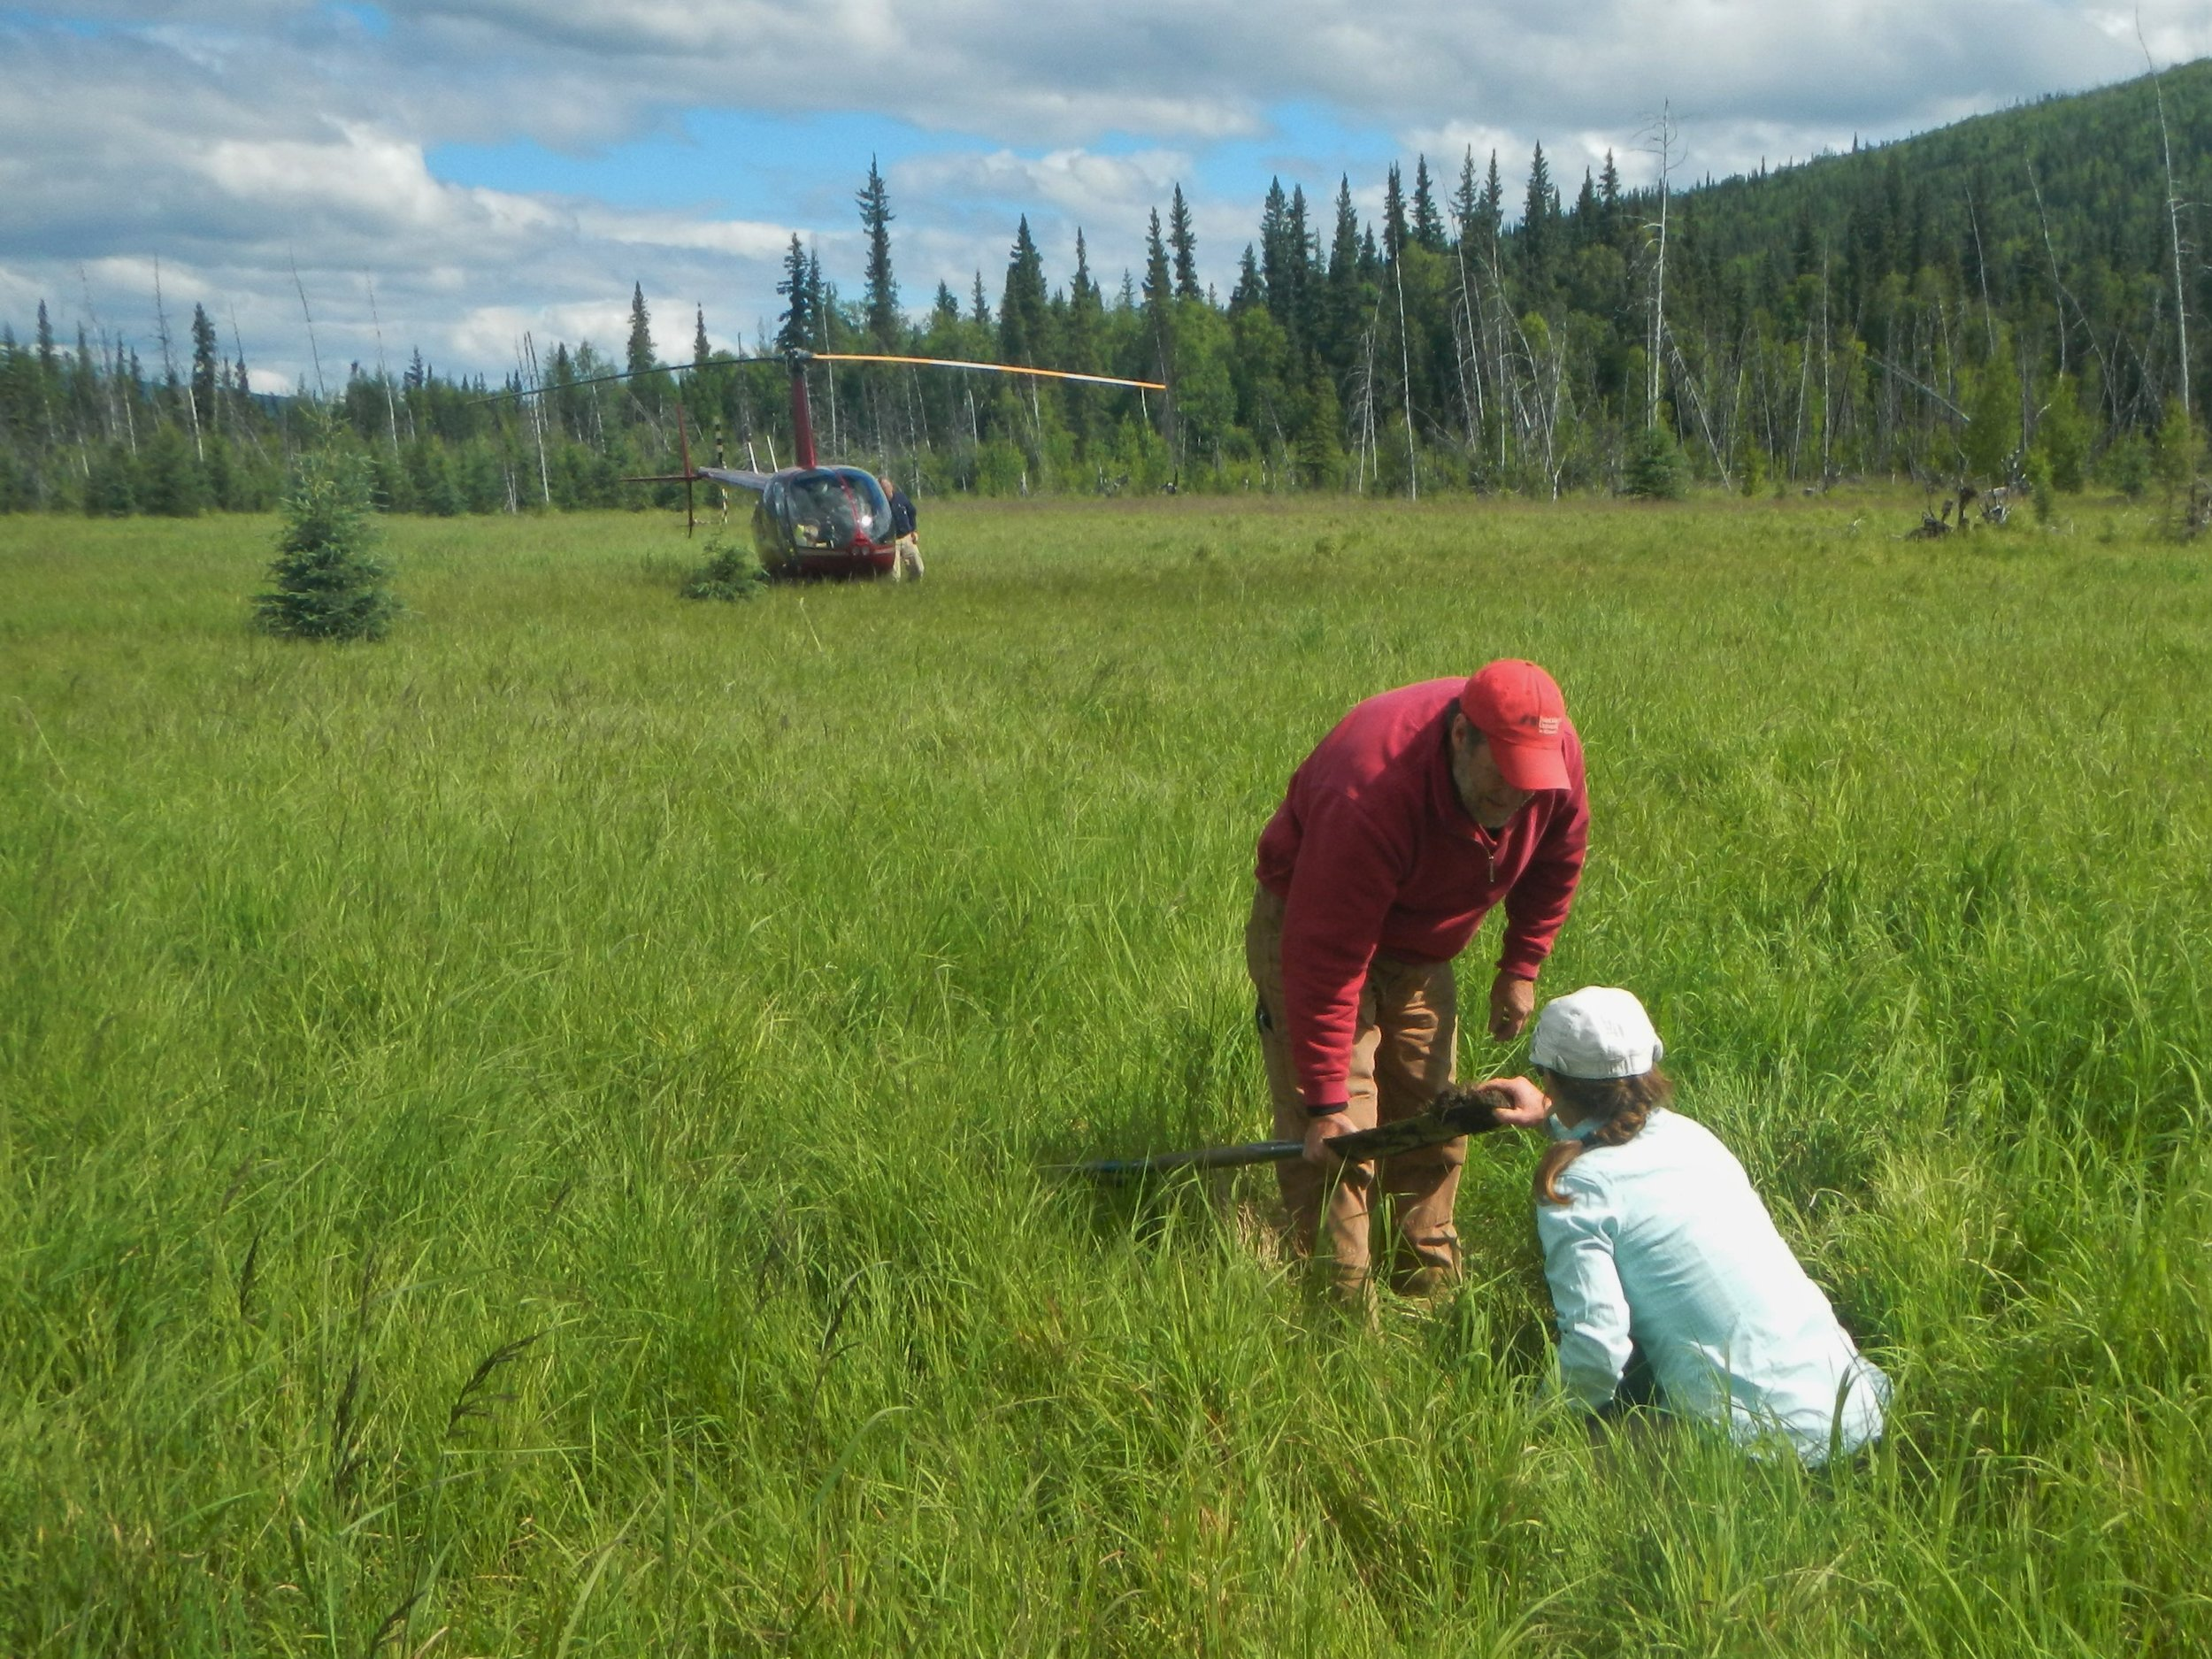 Andy Robertson (Saint Mary's University) and Elizabeth Powers (US Fish & Wildlife Service – Alaska) examining soil characteristics in a saturated emergent wetland.  Photo Credit: Kevin Stark